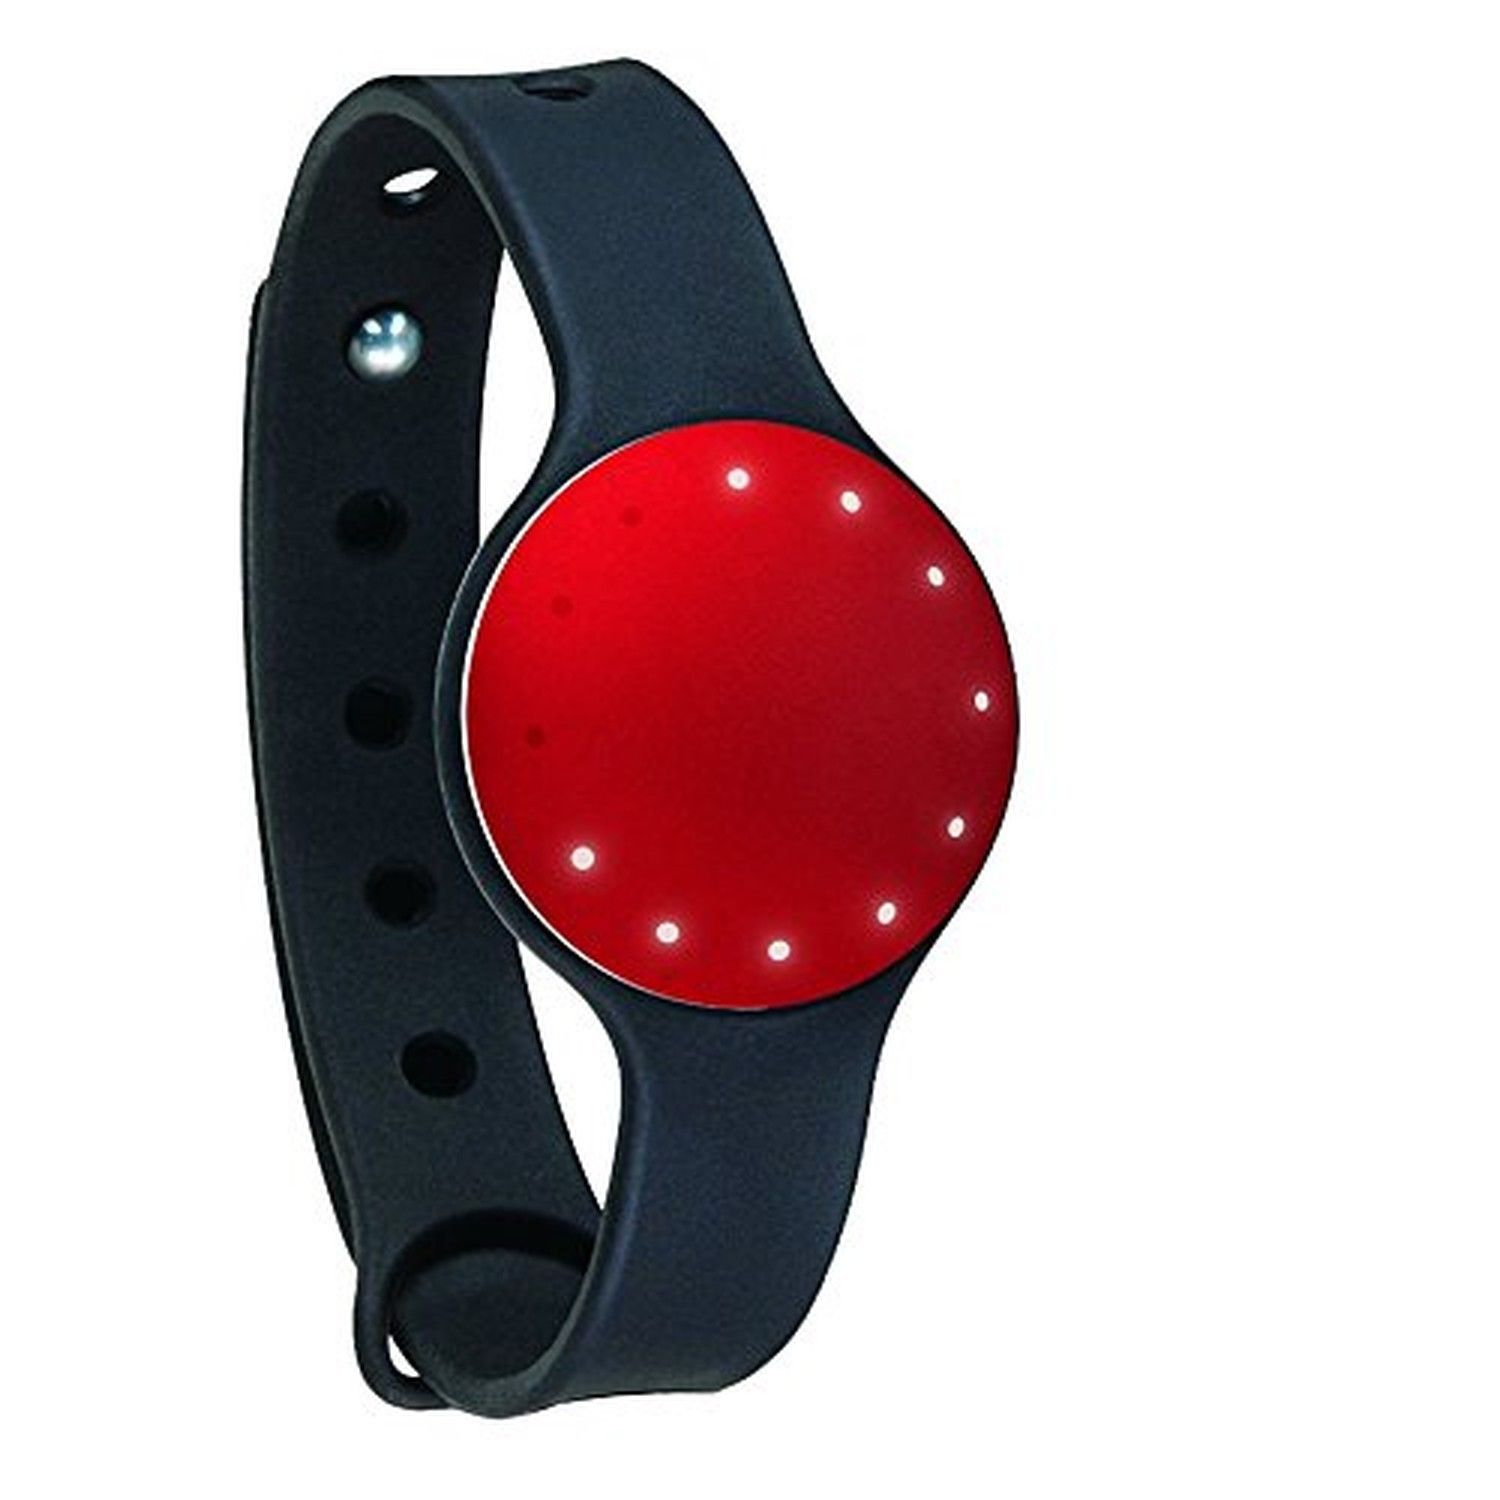 Misfit Wearables Shine Activity and Sleep Monitor